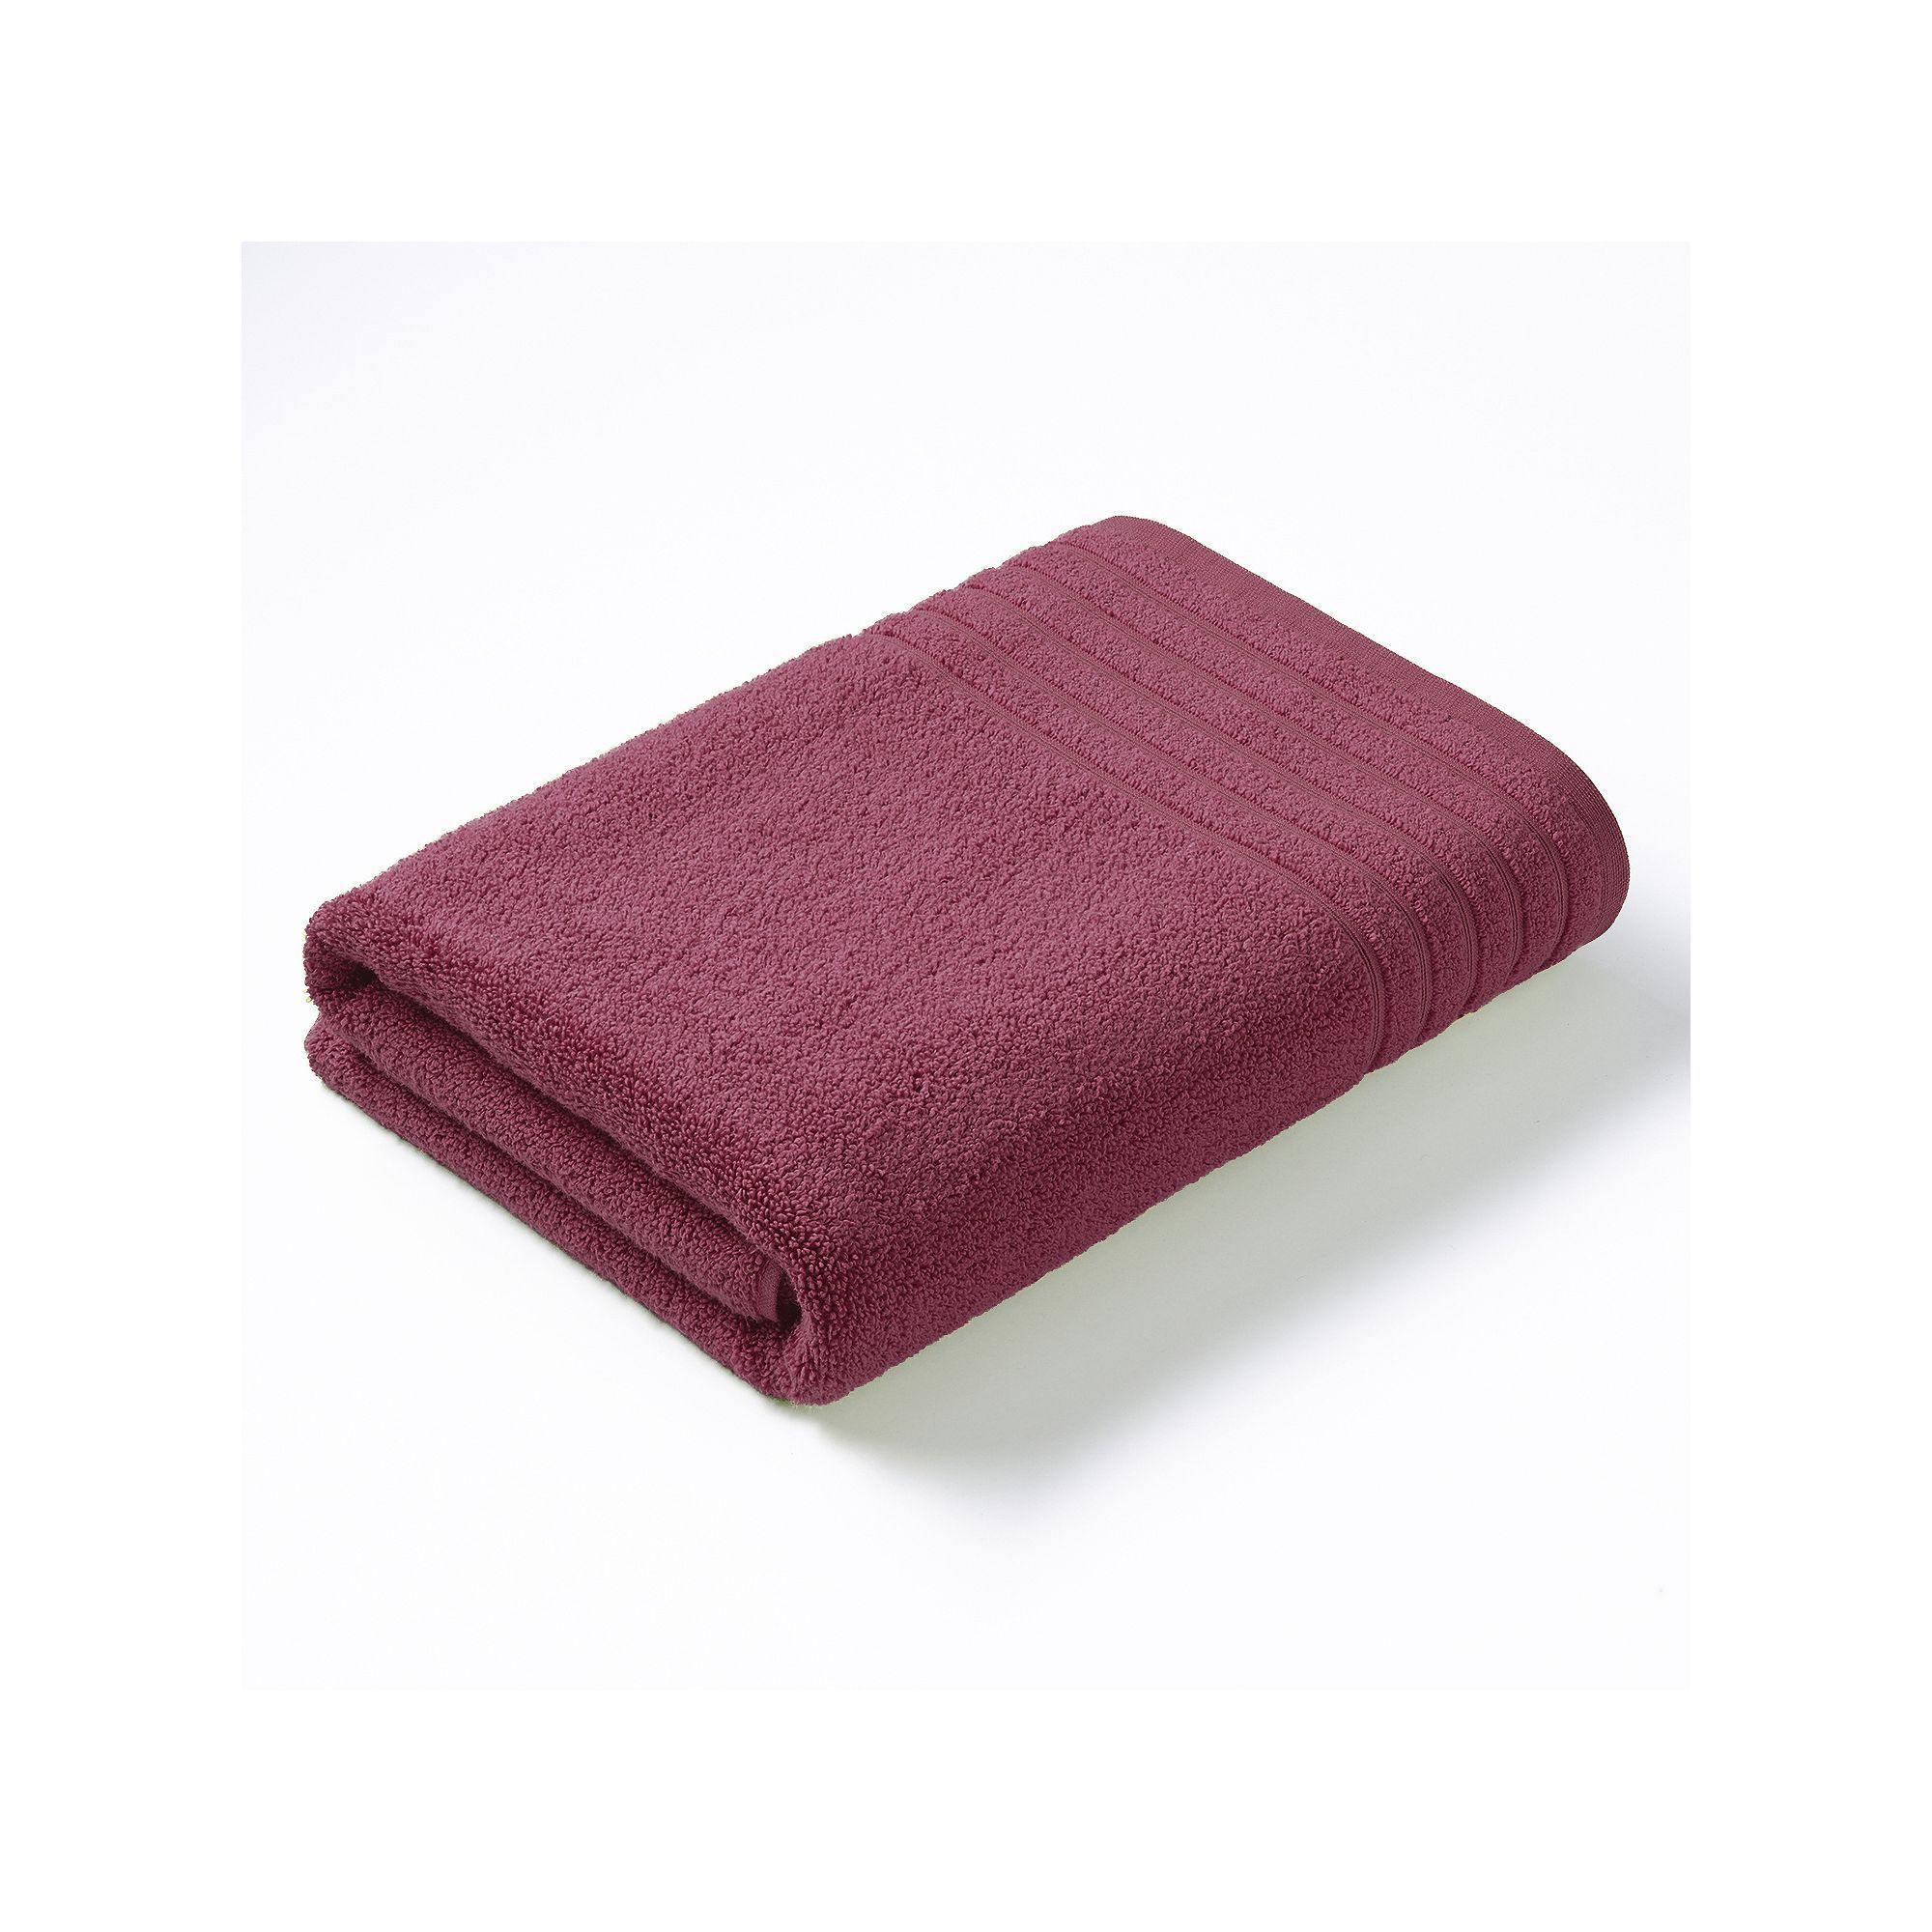 Decorating With Bathroom Towels Bath Towels Luxury Decorating Bathroom Decorative Accessories